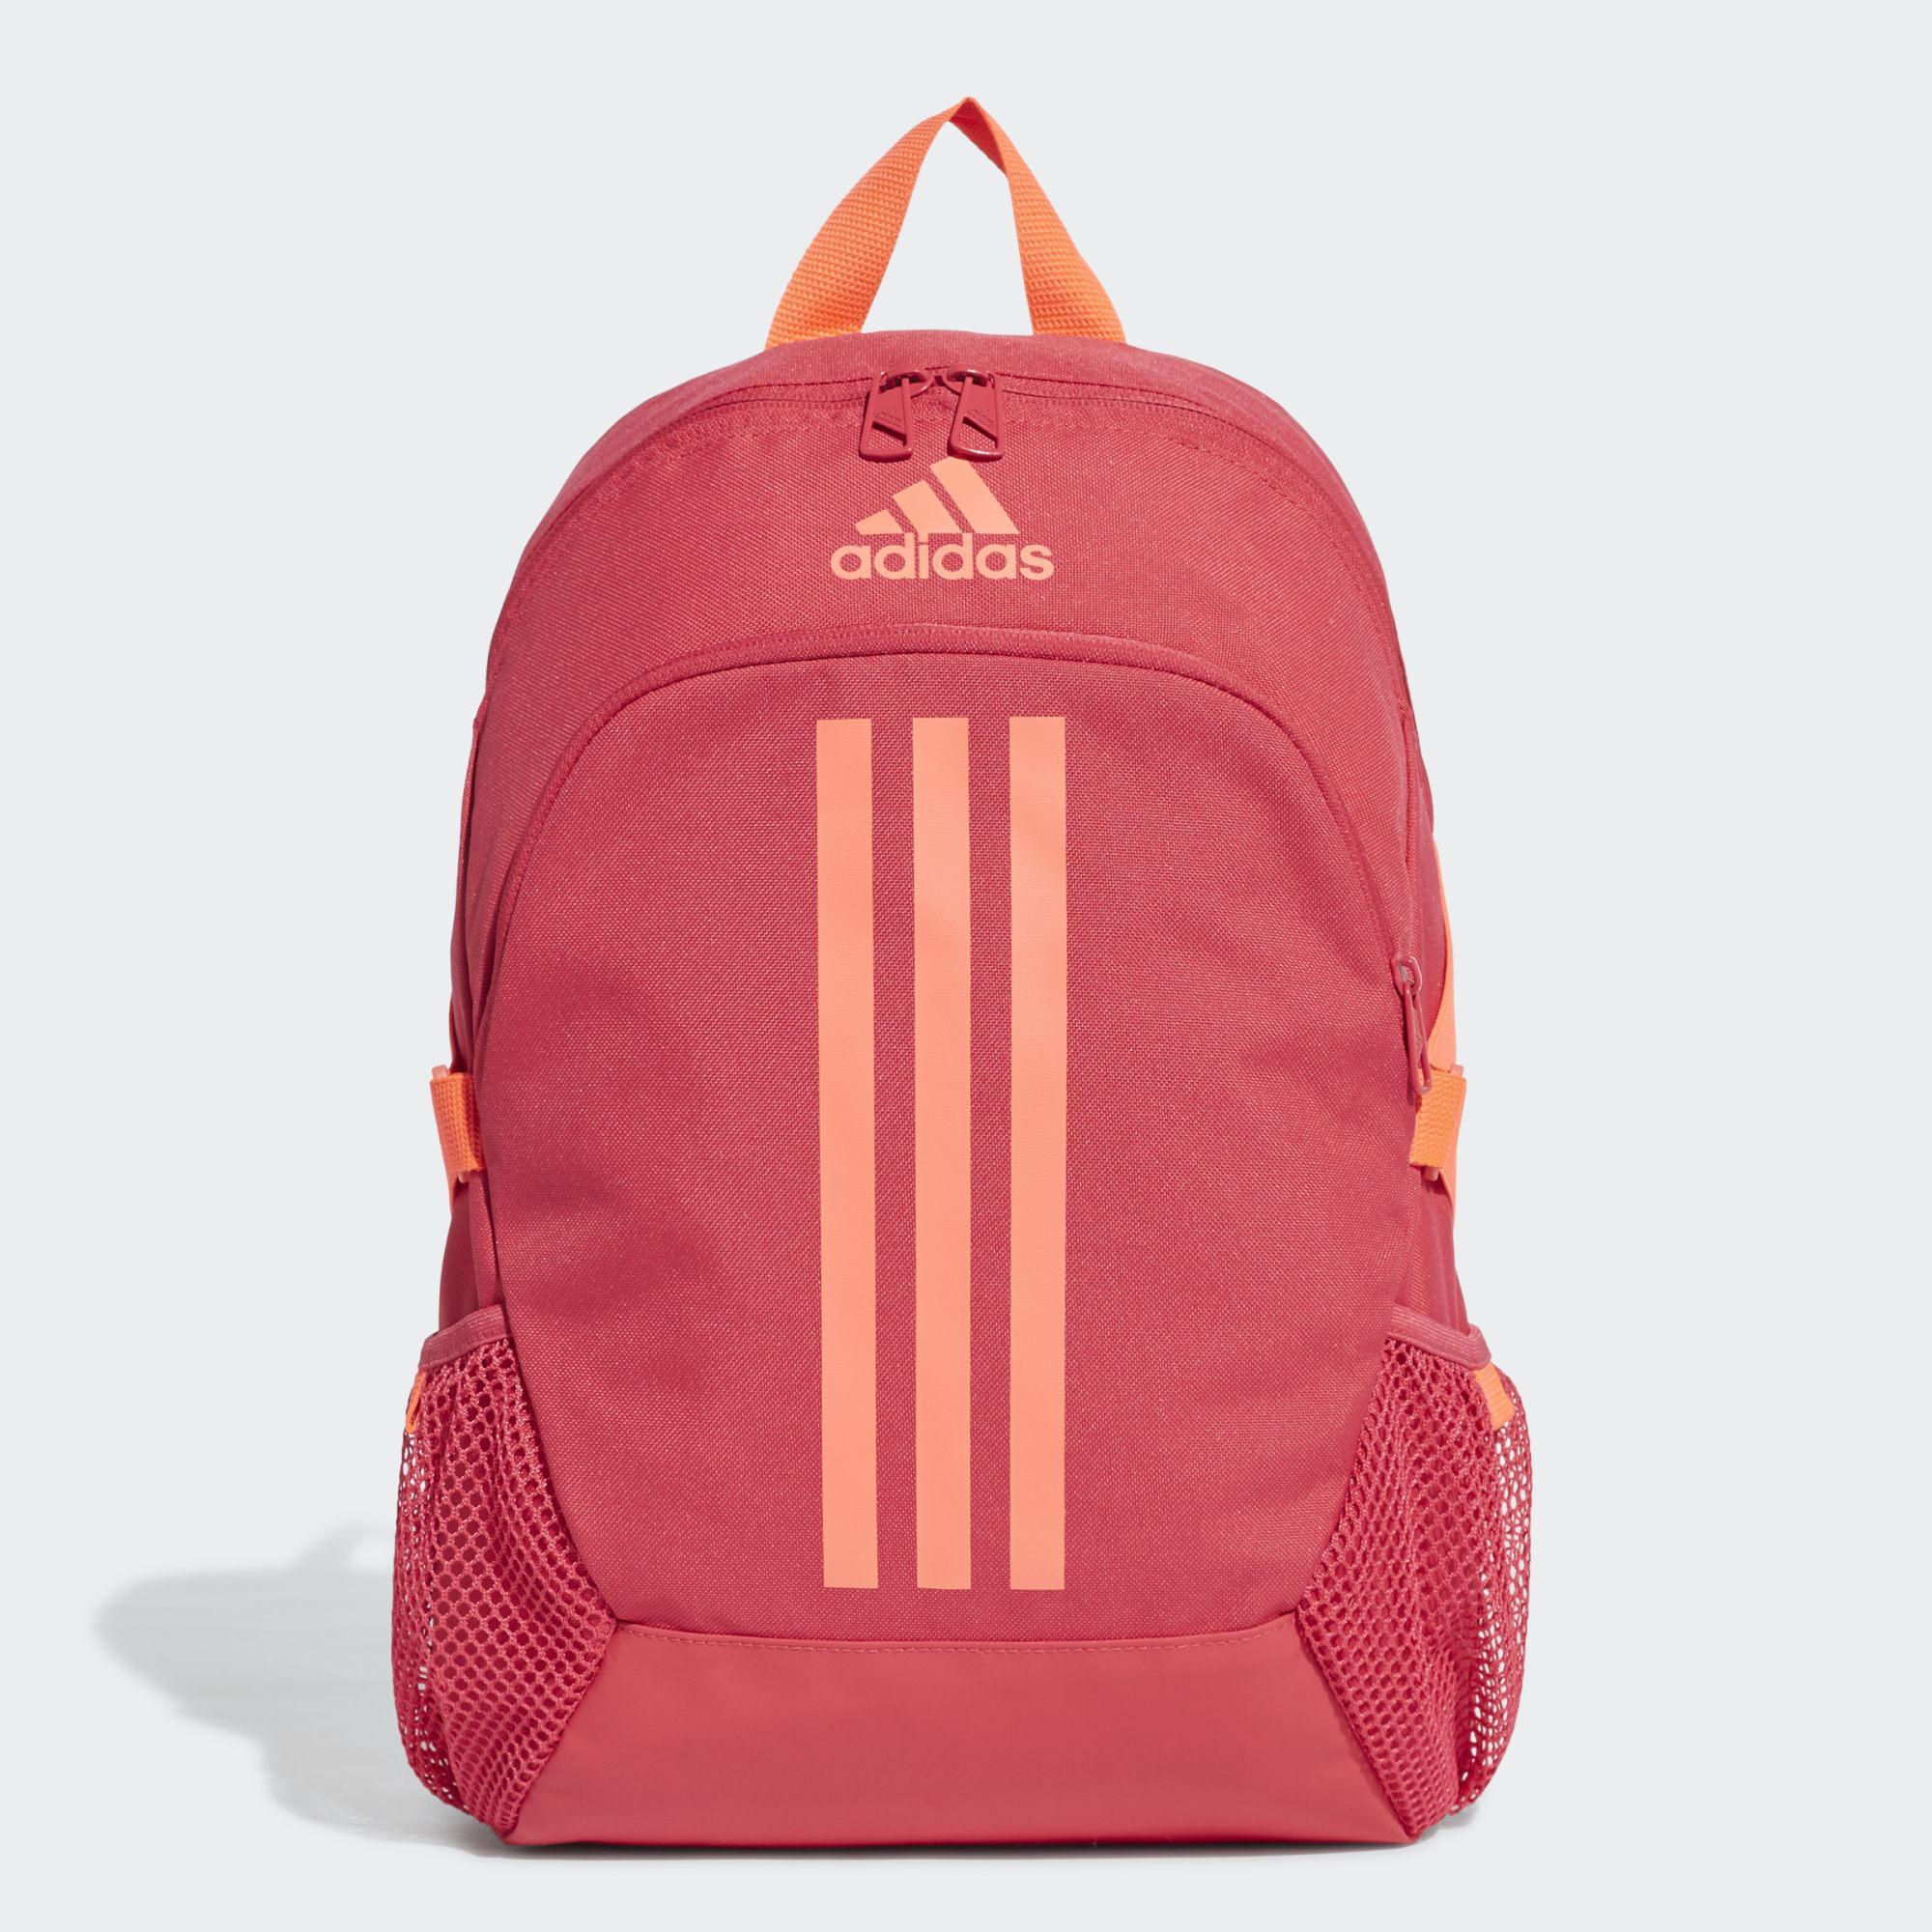 Adidas POWER 5 BACKPACK SMALL_POWER PINK / SIGNAL PINK